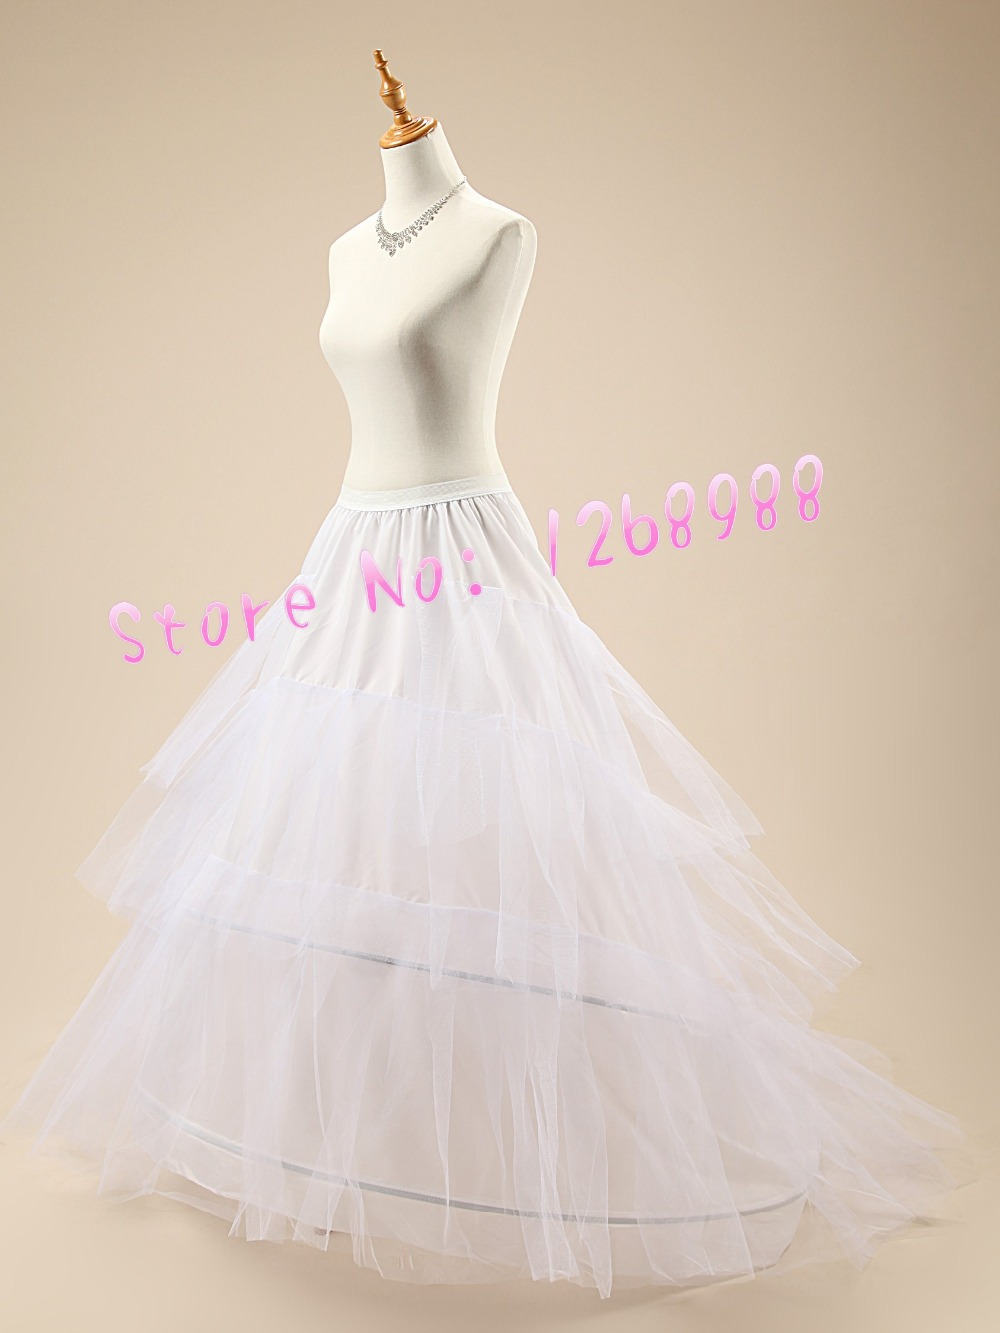 Cheap White Long Tulle Skirt Petticoats Crinoline Slip 2015 Wedding Bride Dress Underskirt Plus